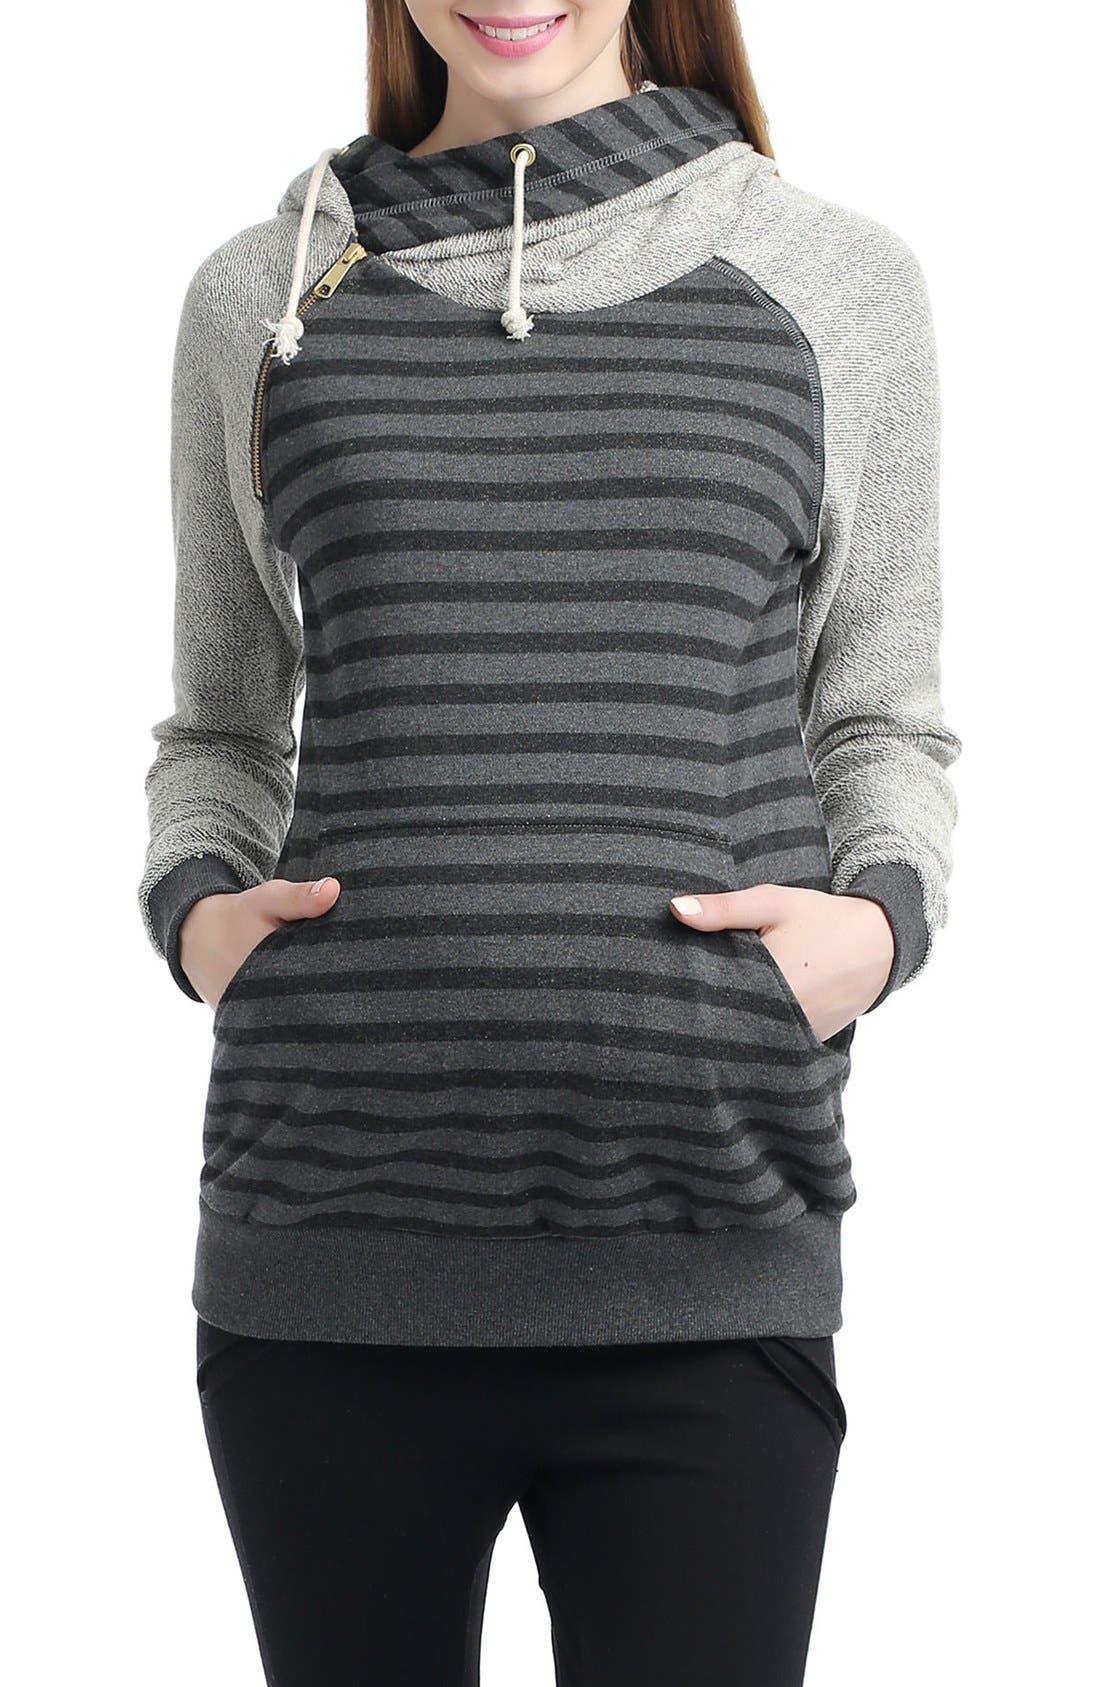 'Lana' Maternity Hoodie,                             Main thumbnail 1, color,                             BLACK/ DARK HEATHER GRAY